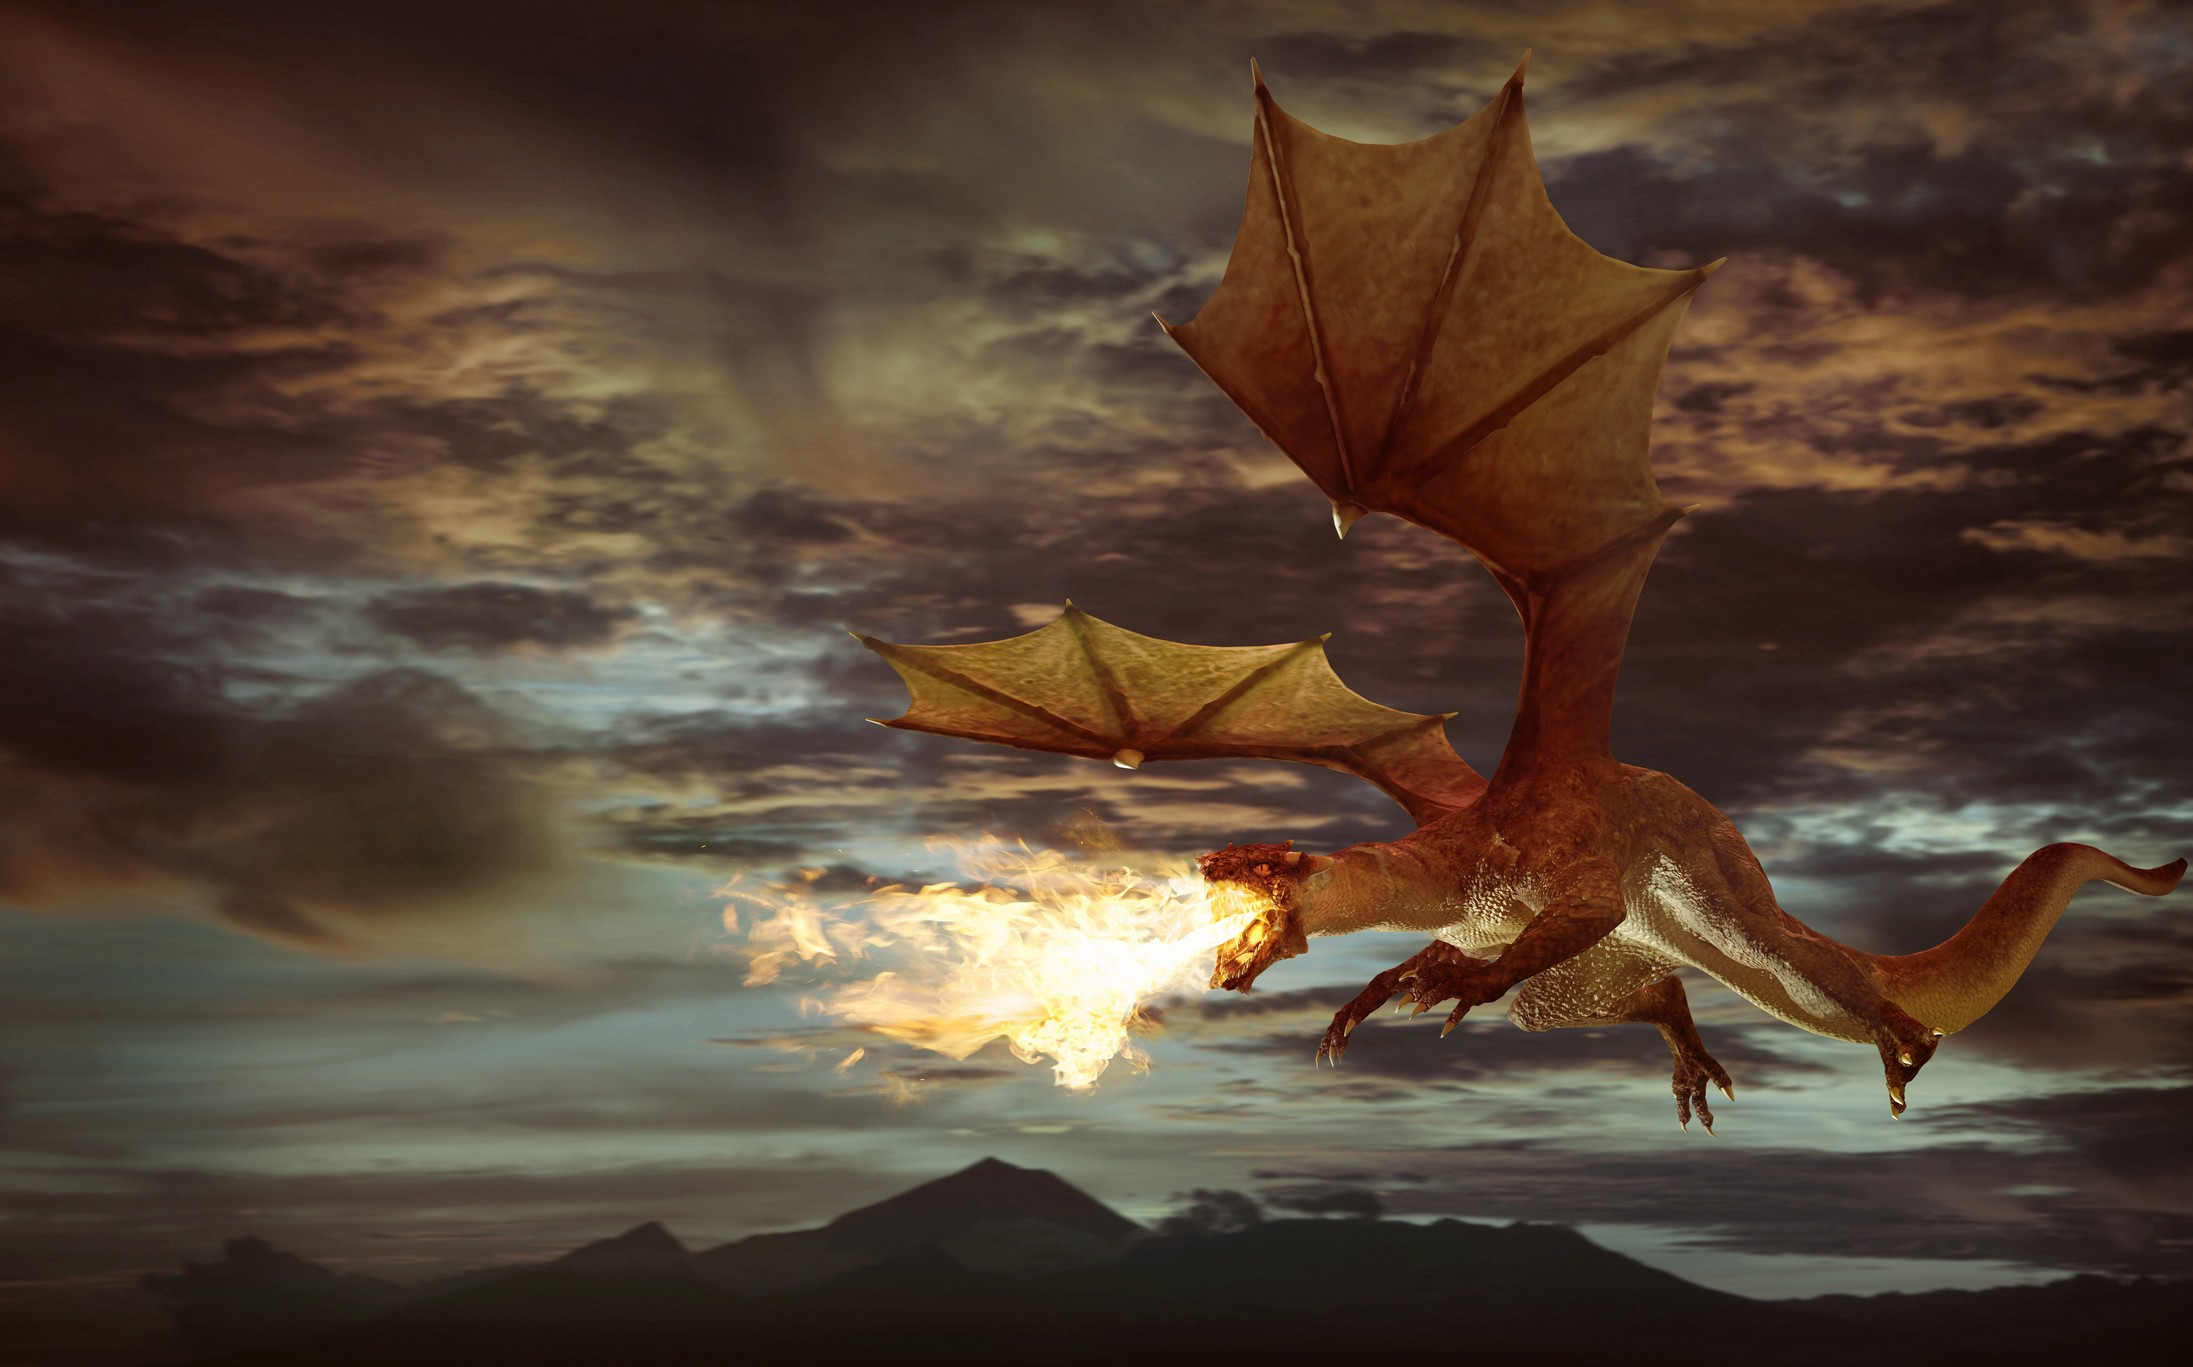 A CGI of a dragon breathing fire while flying in the air against a dark cloudy background.